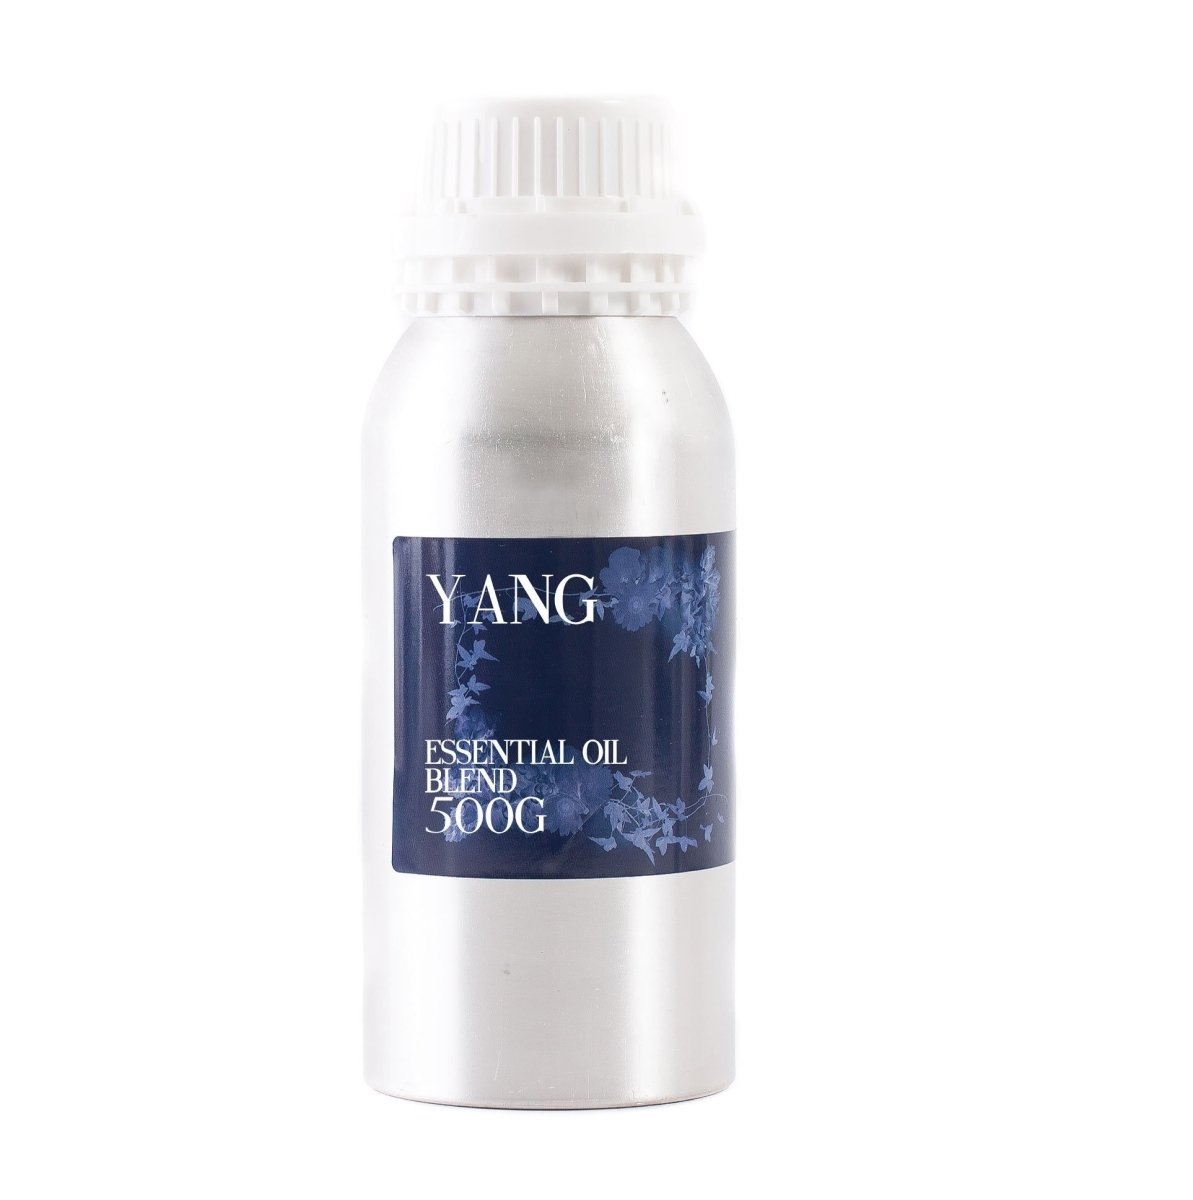 Yang Essential Oil Blend - Mystic Moments UK